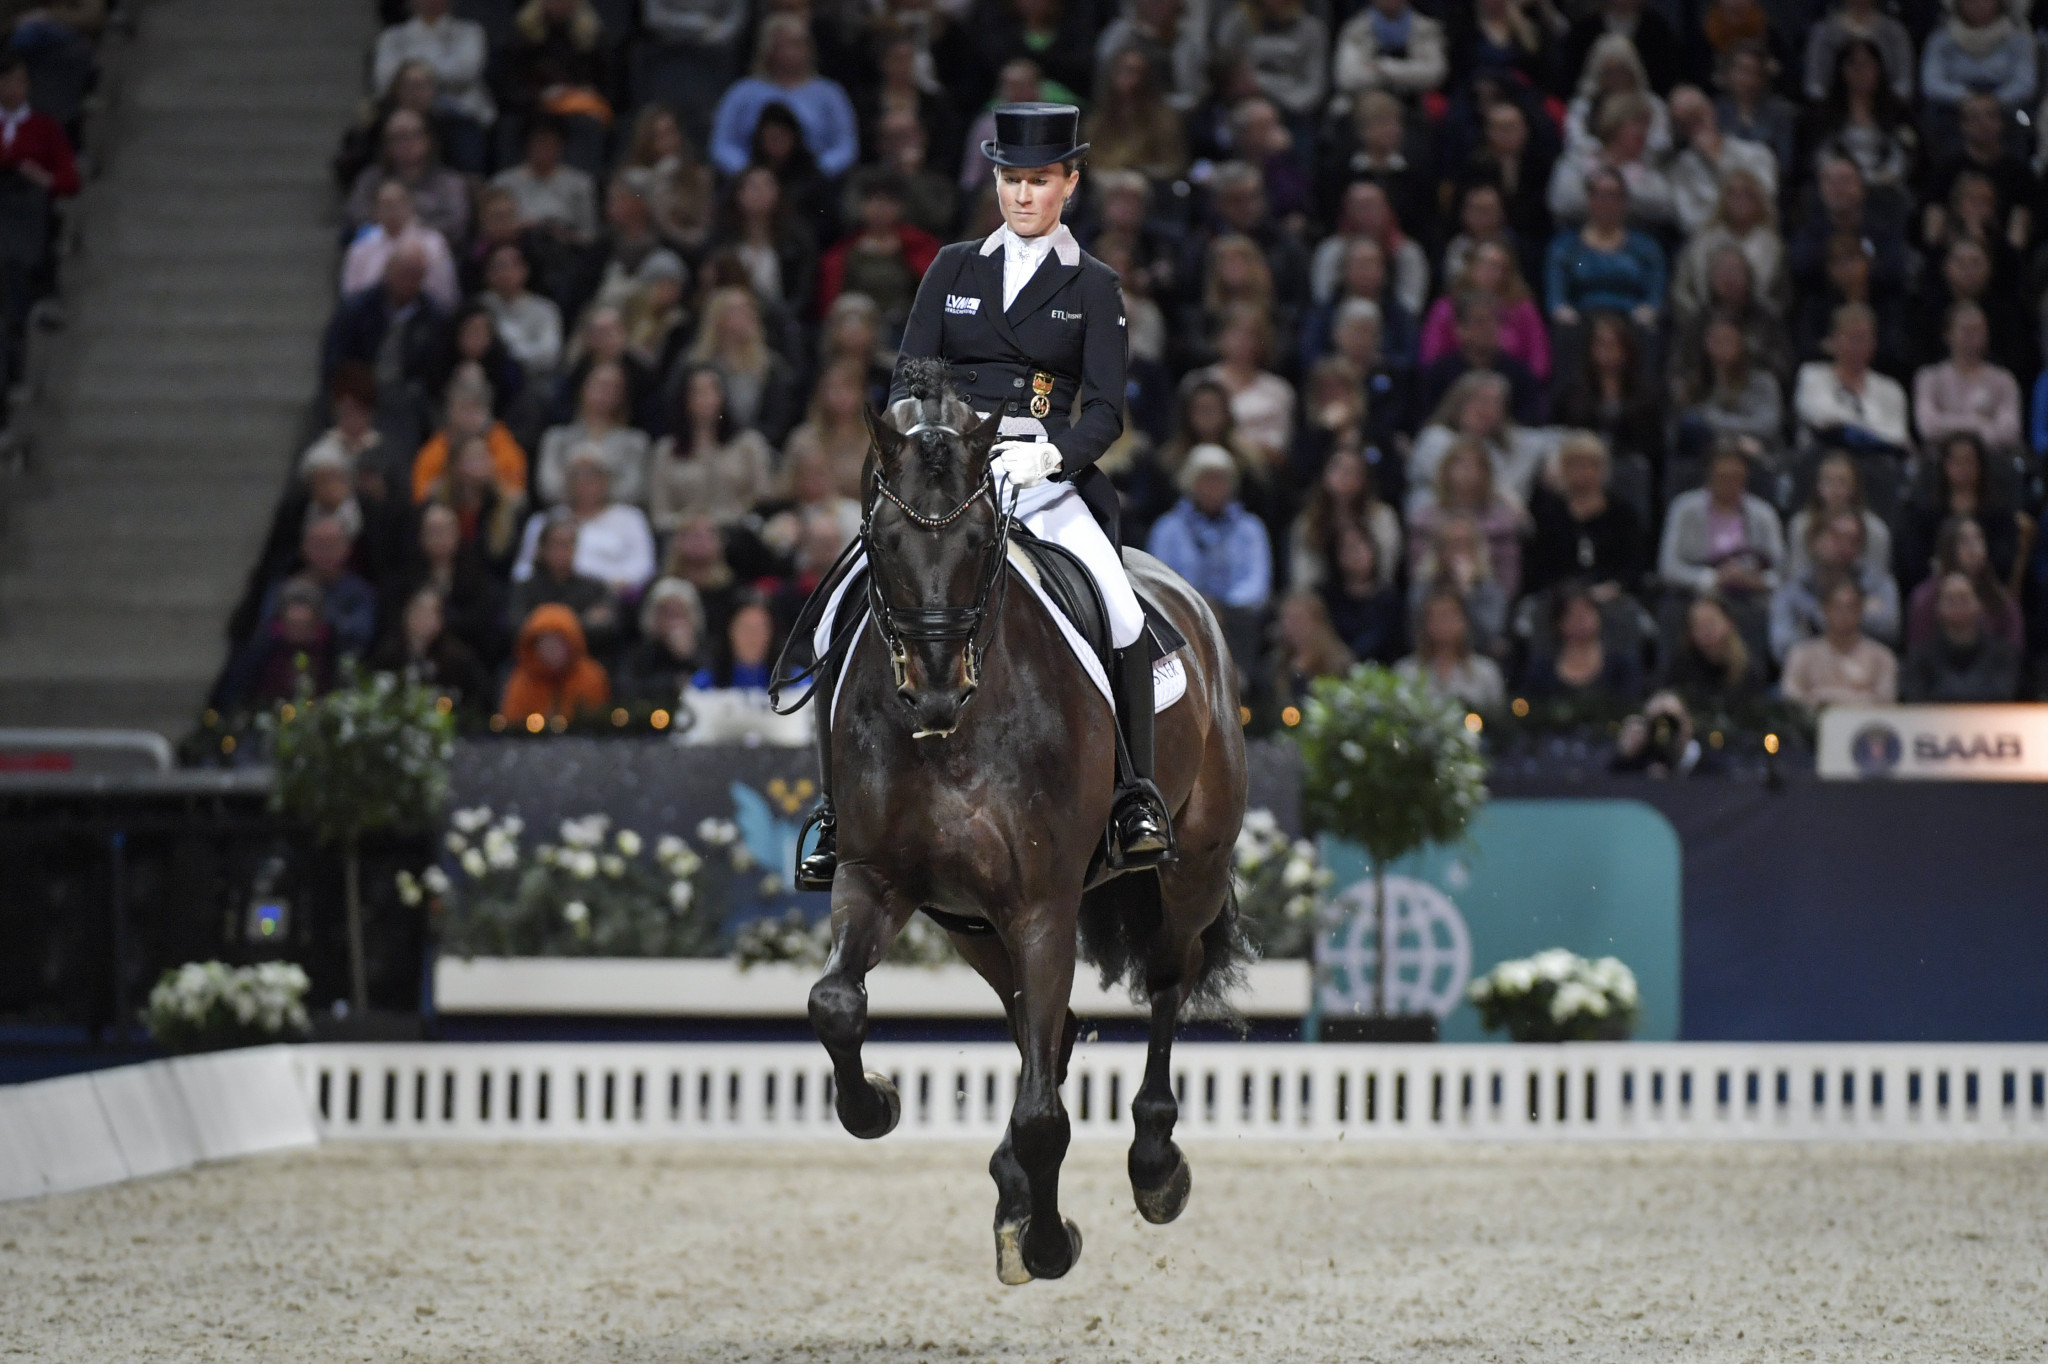 Germany's Helen Langehanenberg and Damsey FRH finished second in the seventh leg of the FEI Dressage World Cup event in Mechelen with 82.880 points ©Getty Images